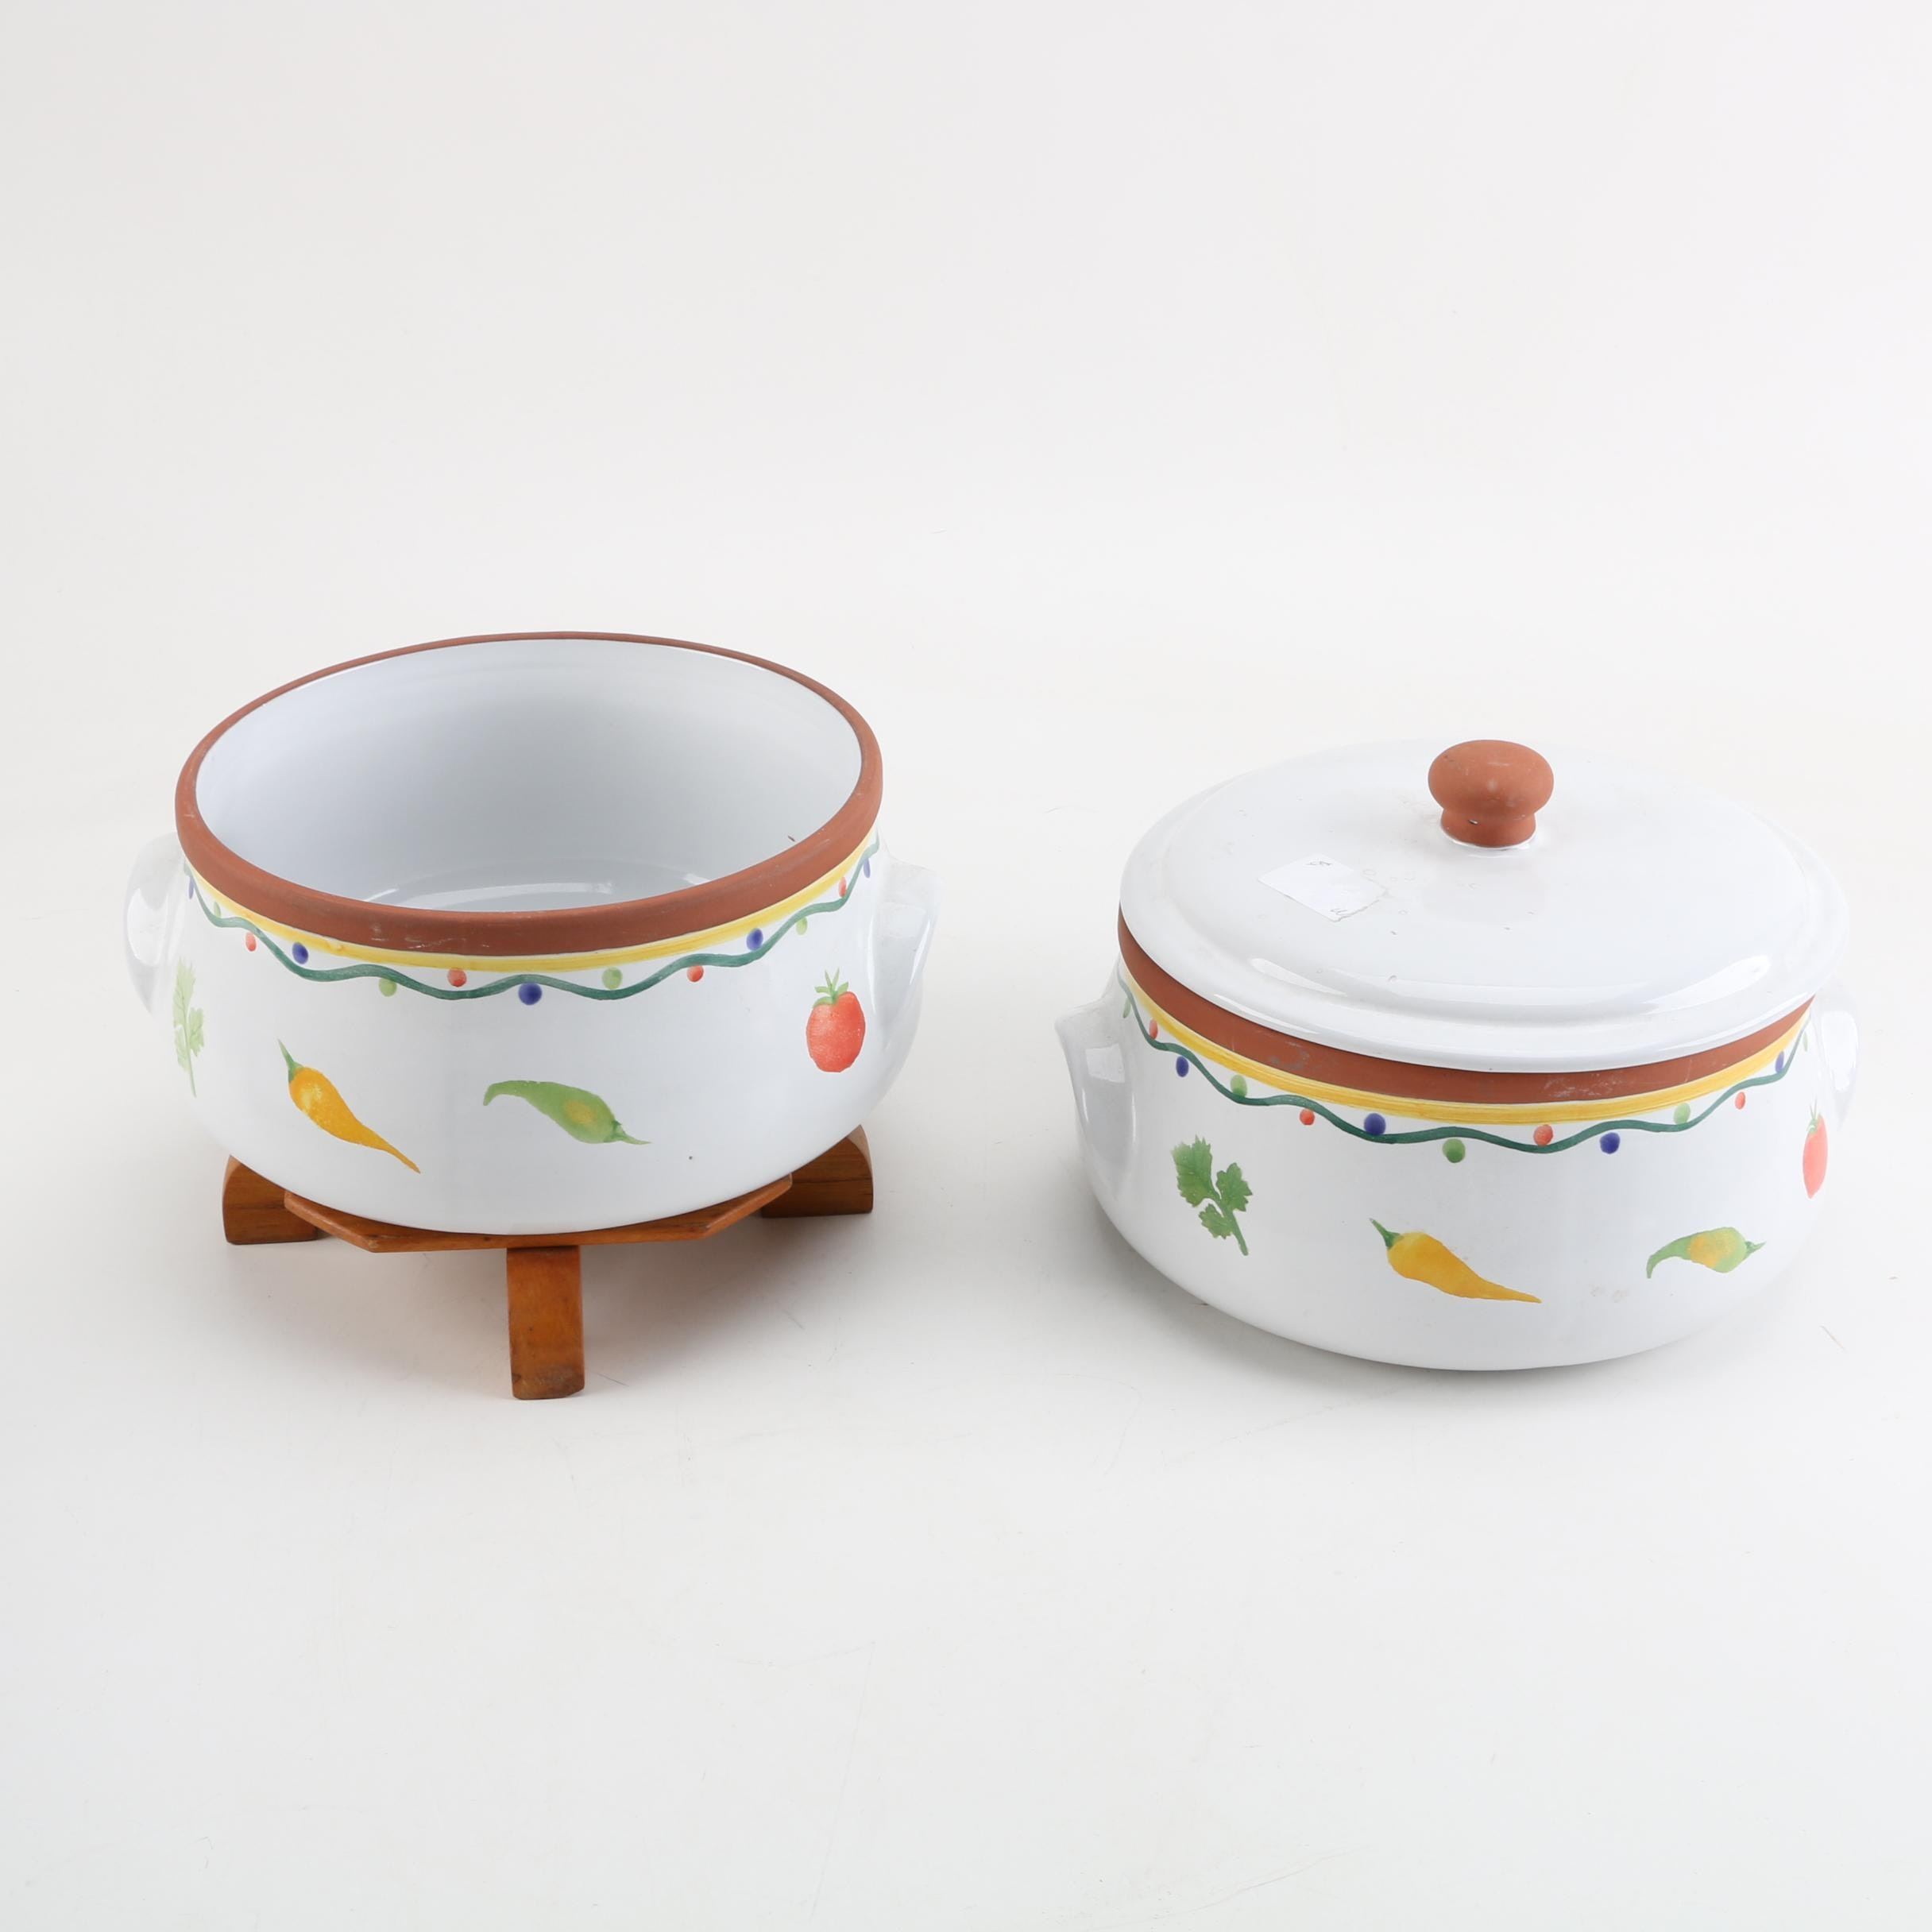 Hand-Painted Earthenware Casseroles